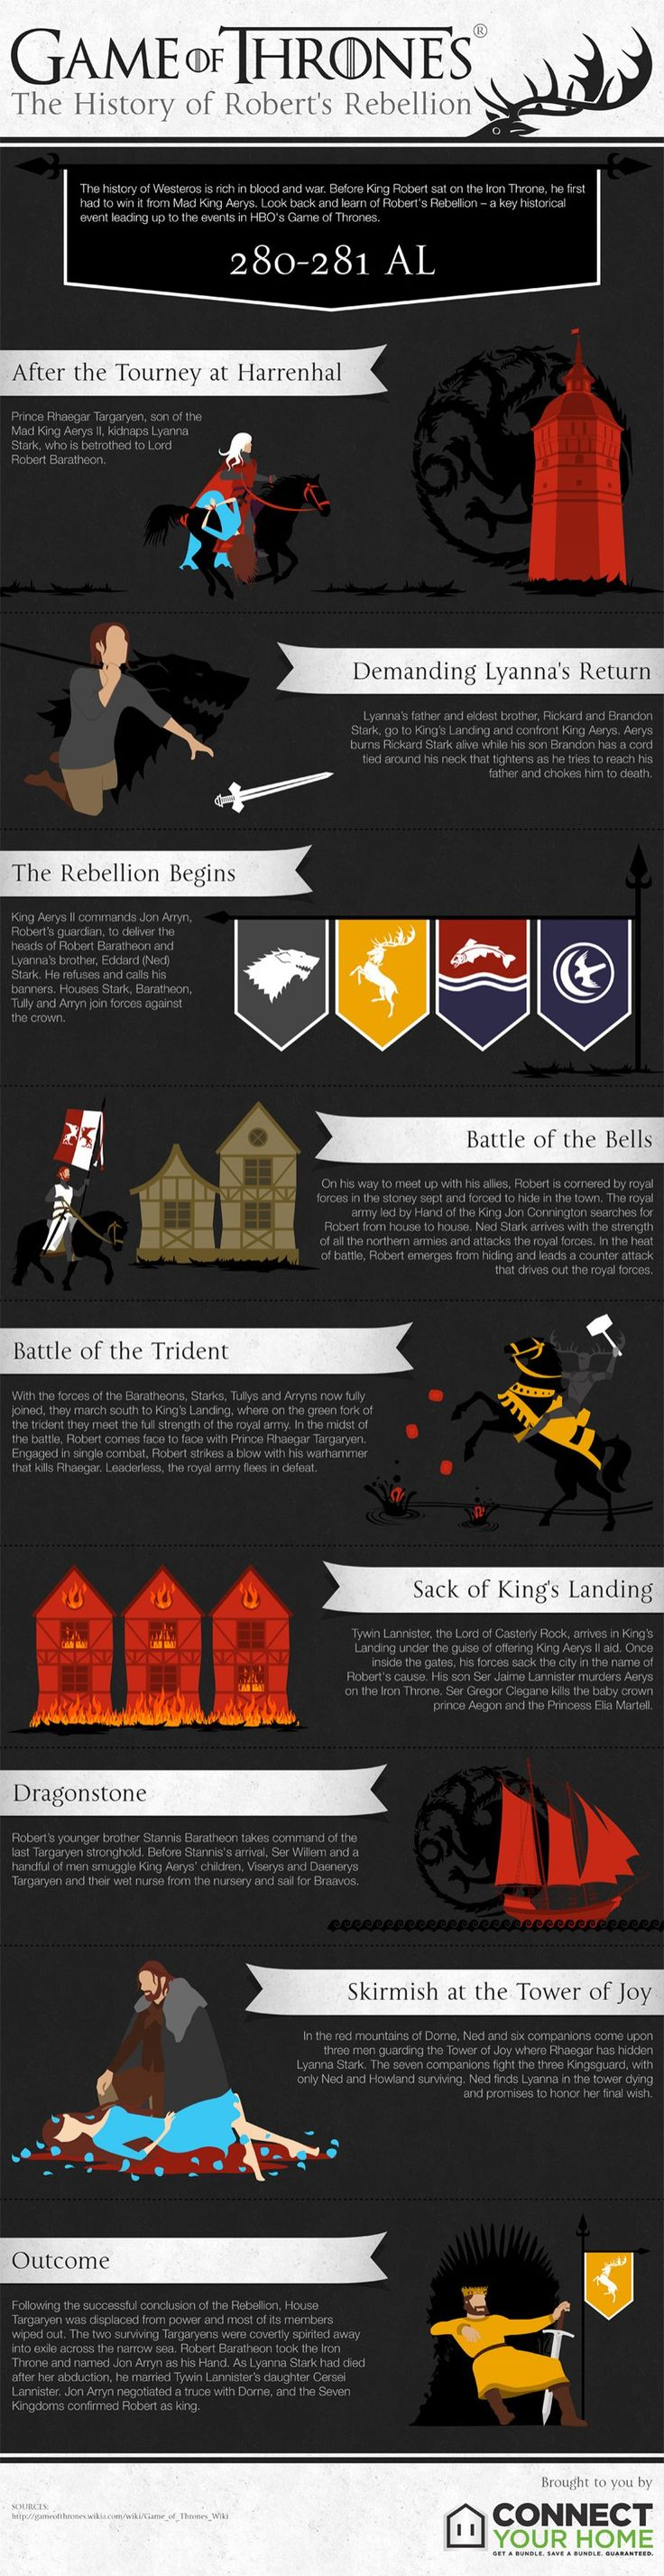 Game of Thrones back story